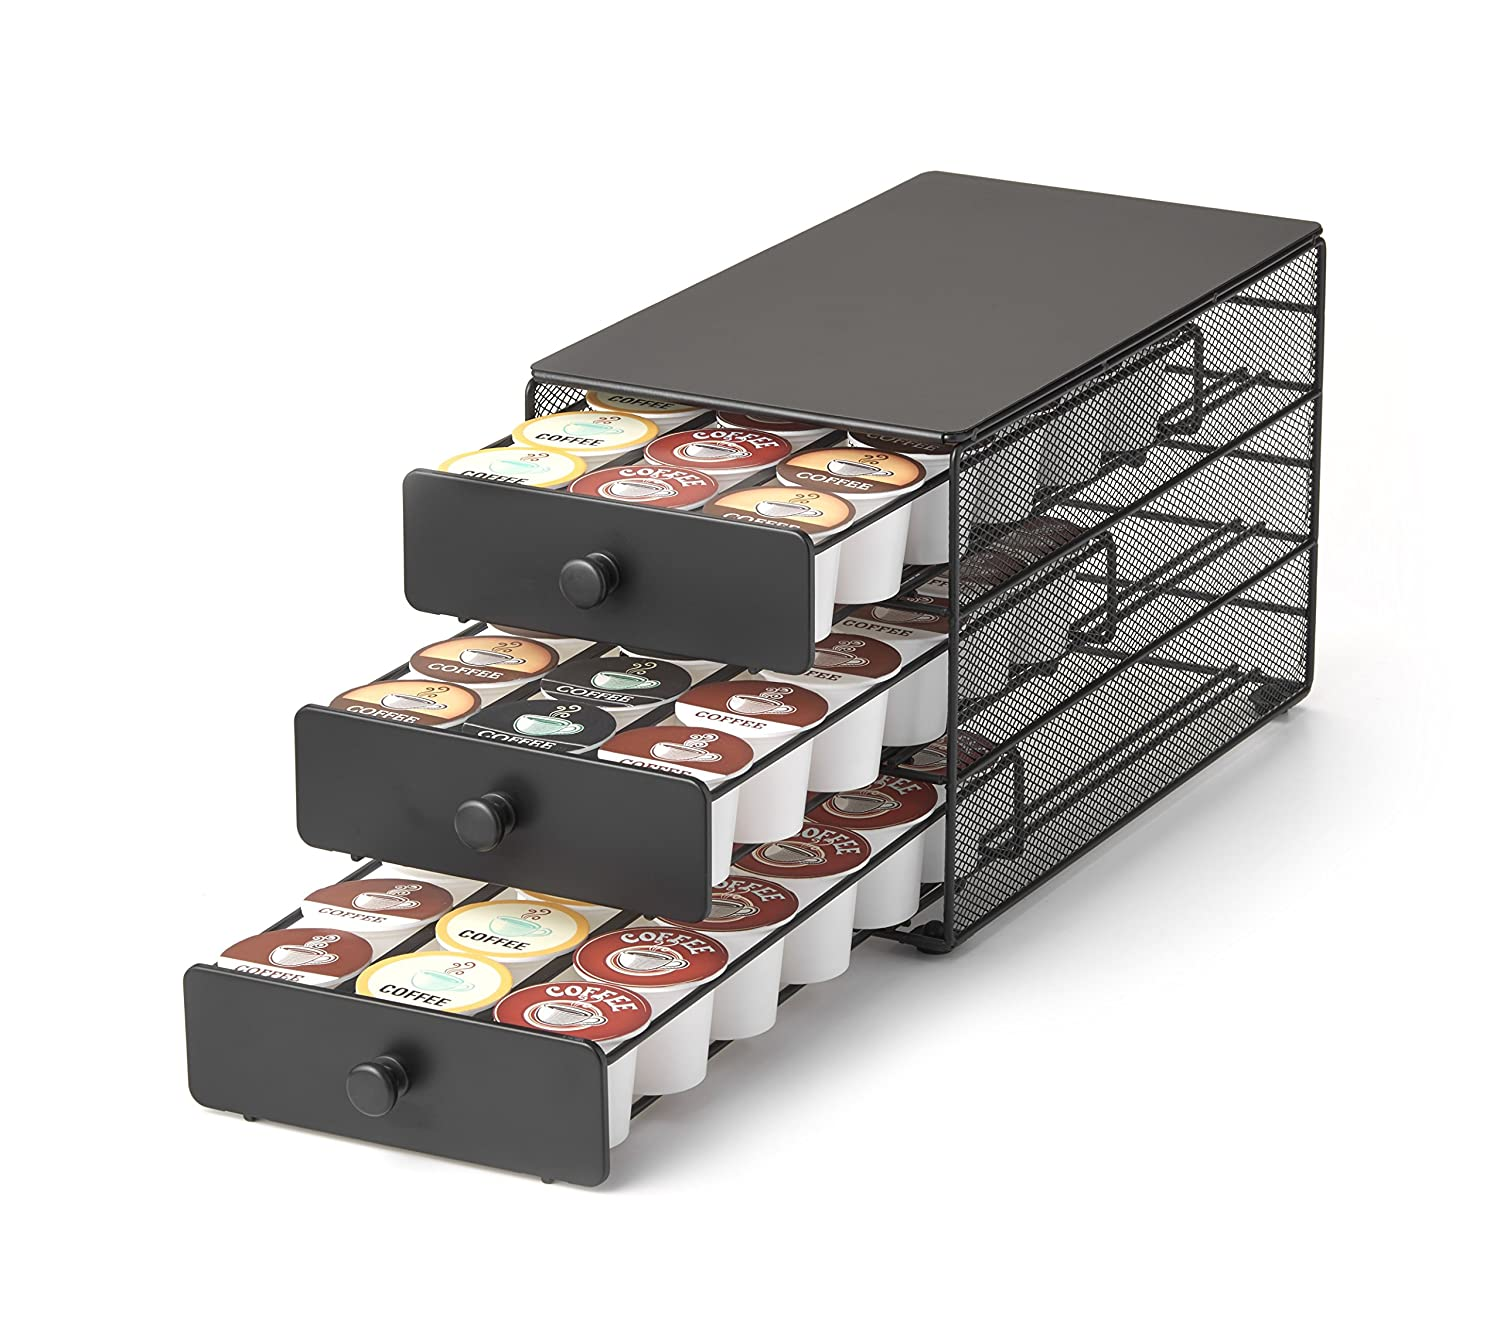 Nifty 3-tier Large Capacity Coffee Pod Storage Drawer for K-Cup Pods. 54 Pod Capacity only 7 inches wide